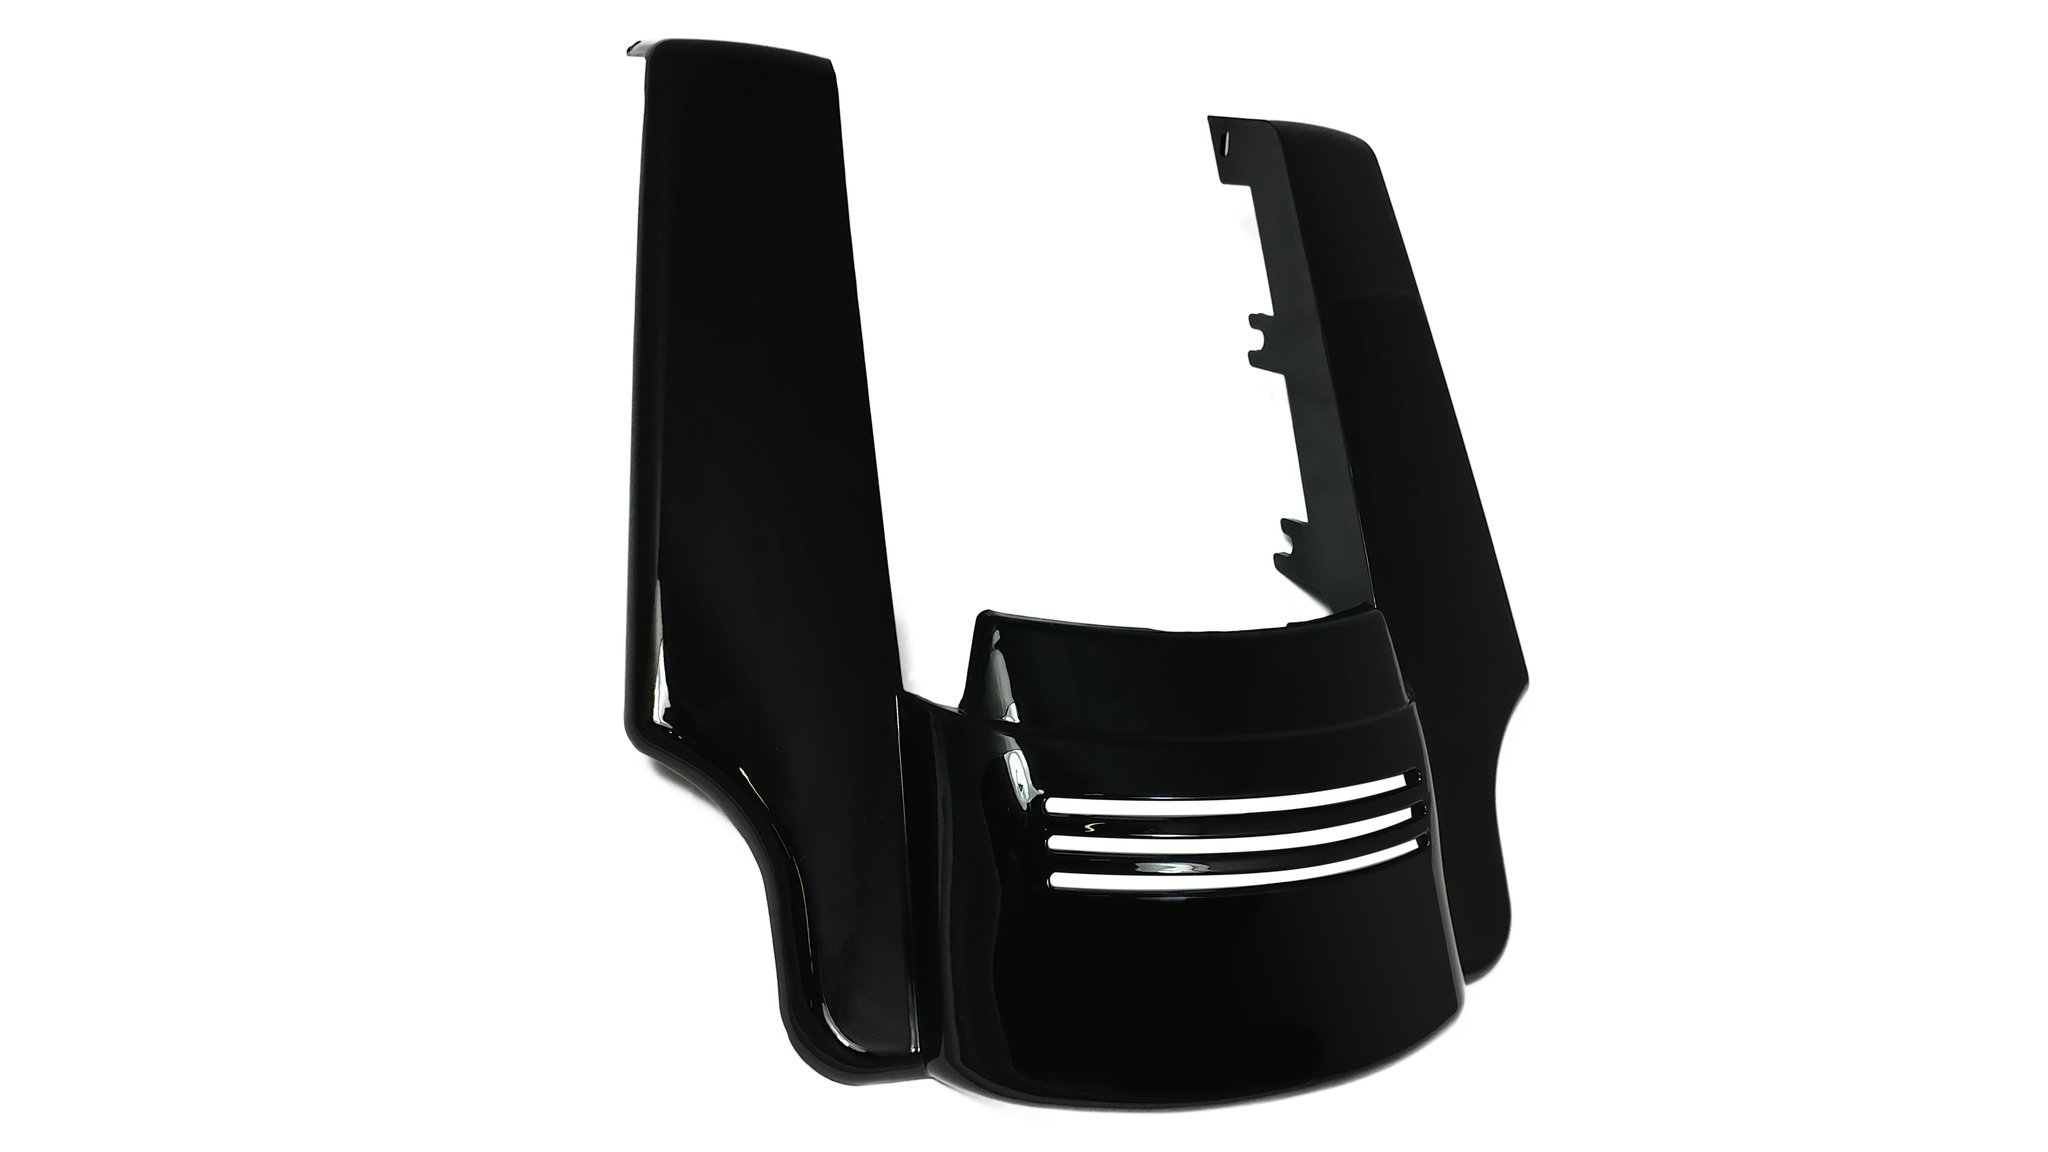 Bagger Brothers BB-HD1584-134 Black Fender Panel (Angled ABS Extension and Filler for 2014-2017 Harley-Davidson Touring Models)